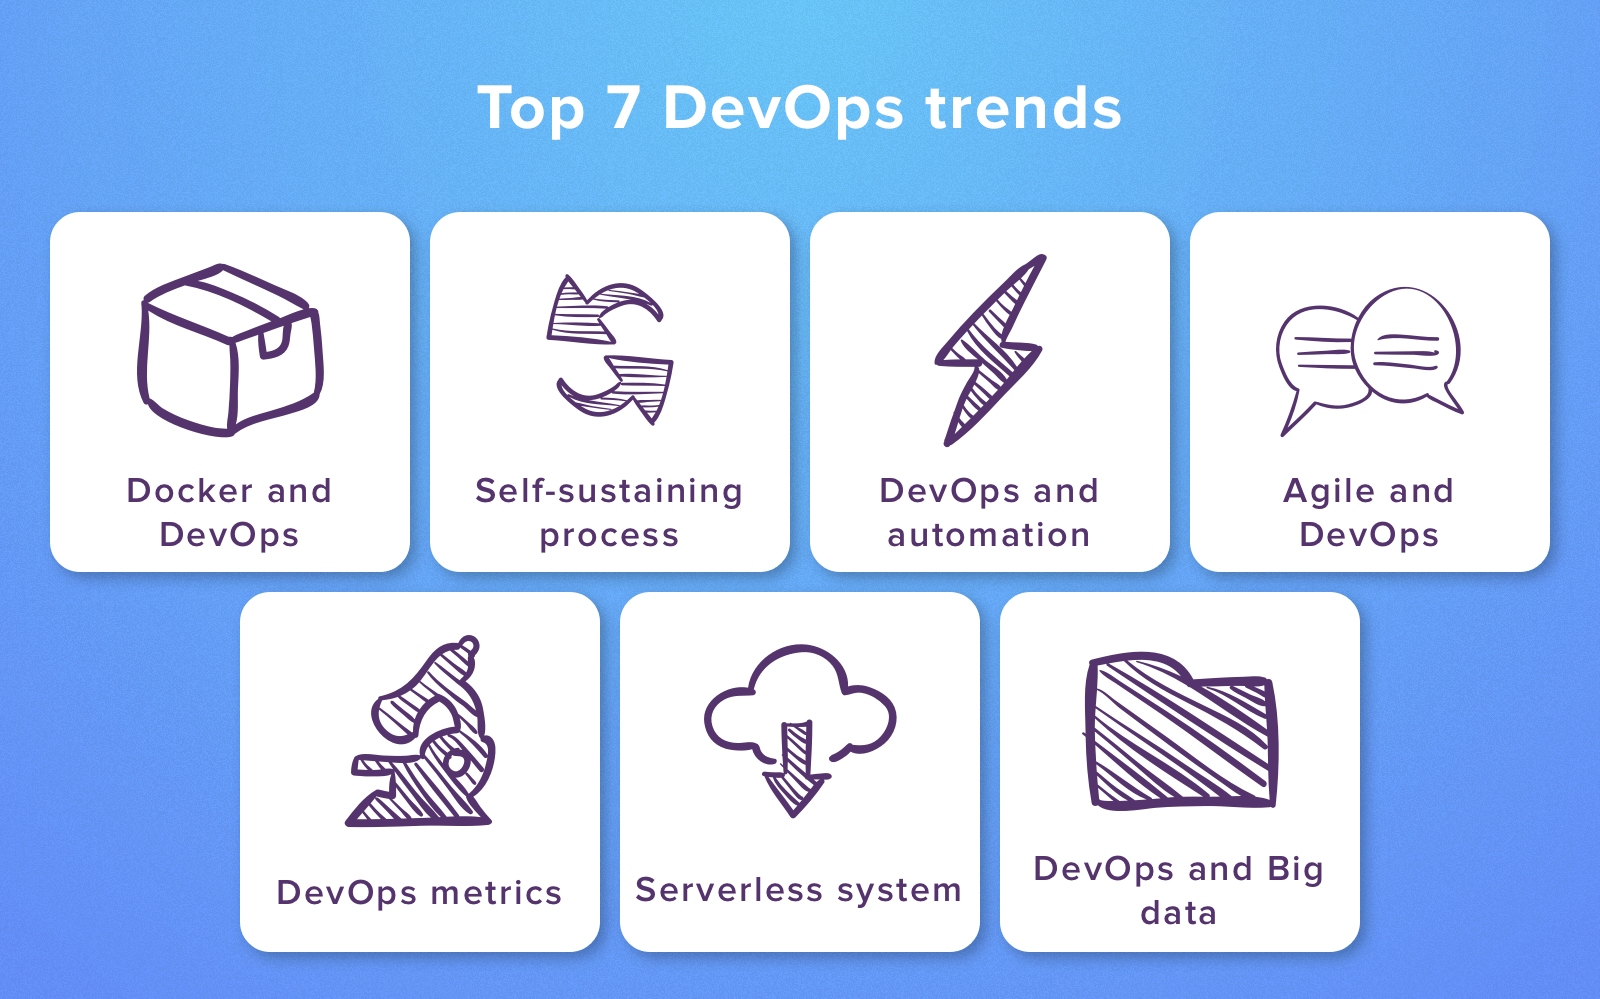 DevOps automation trends